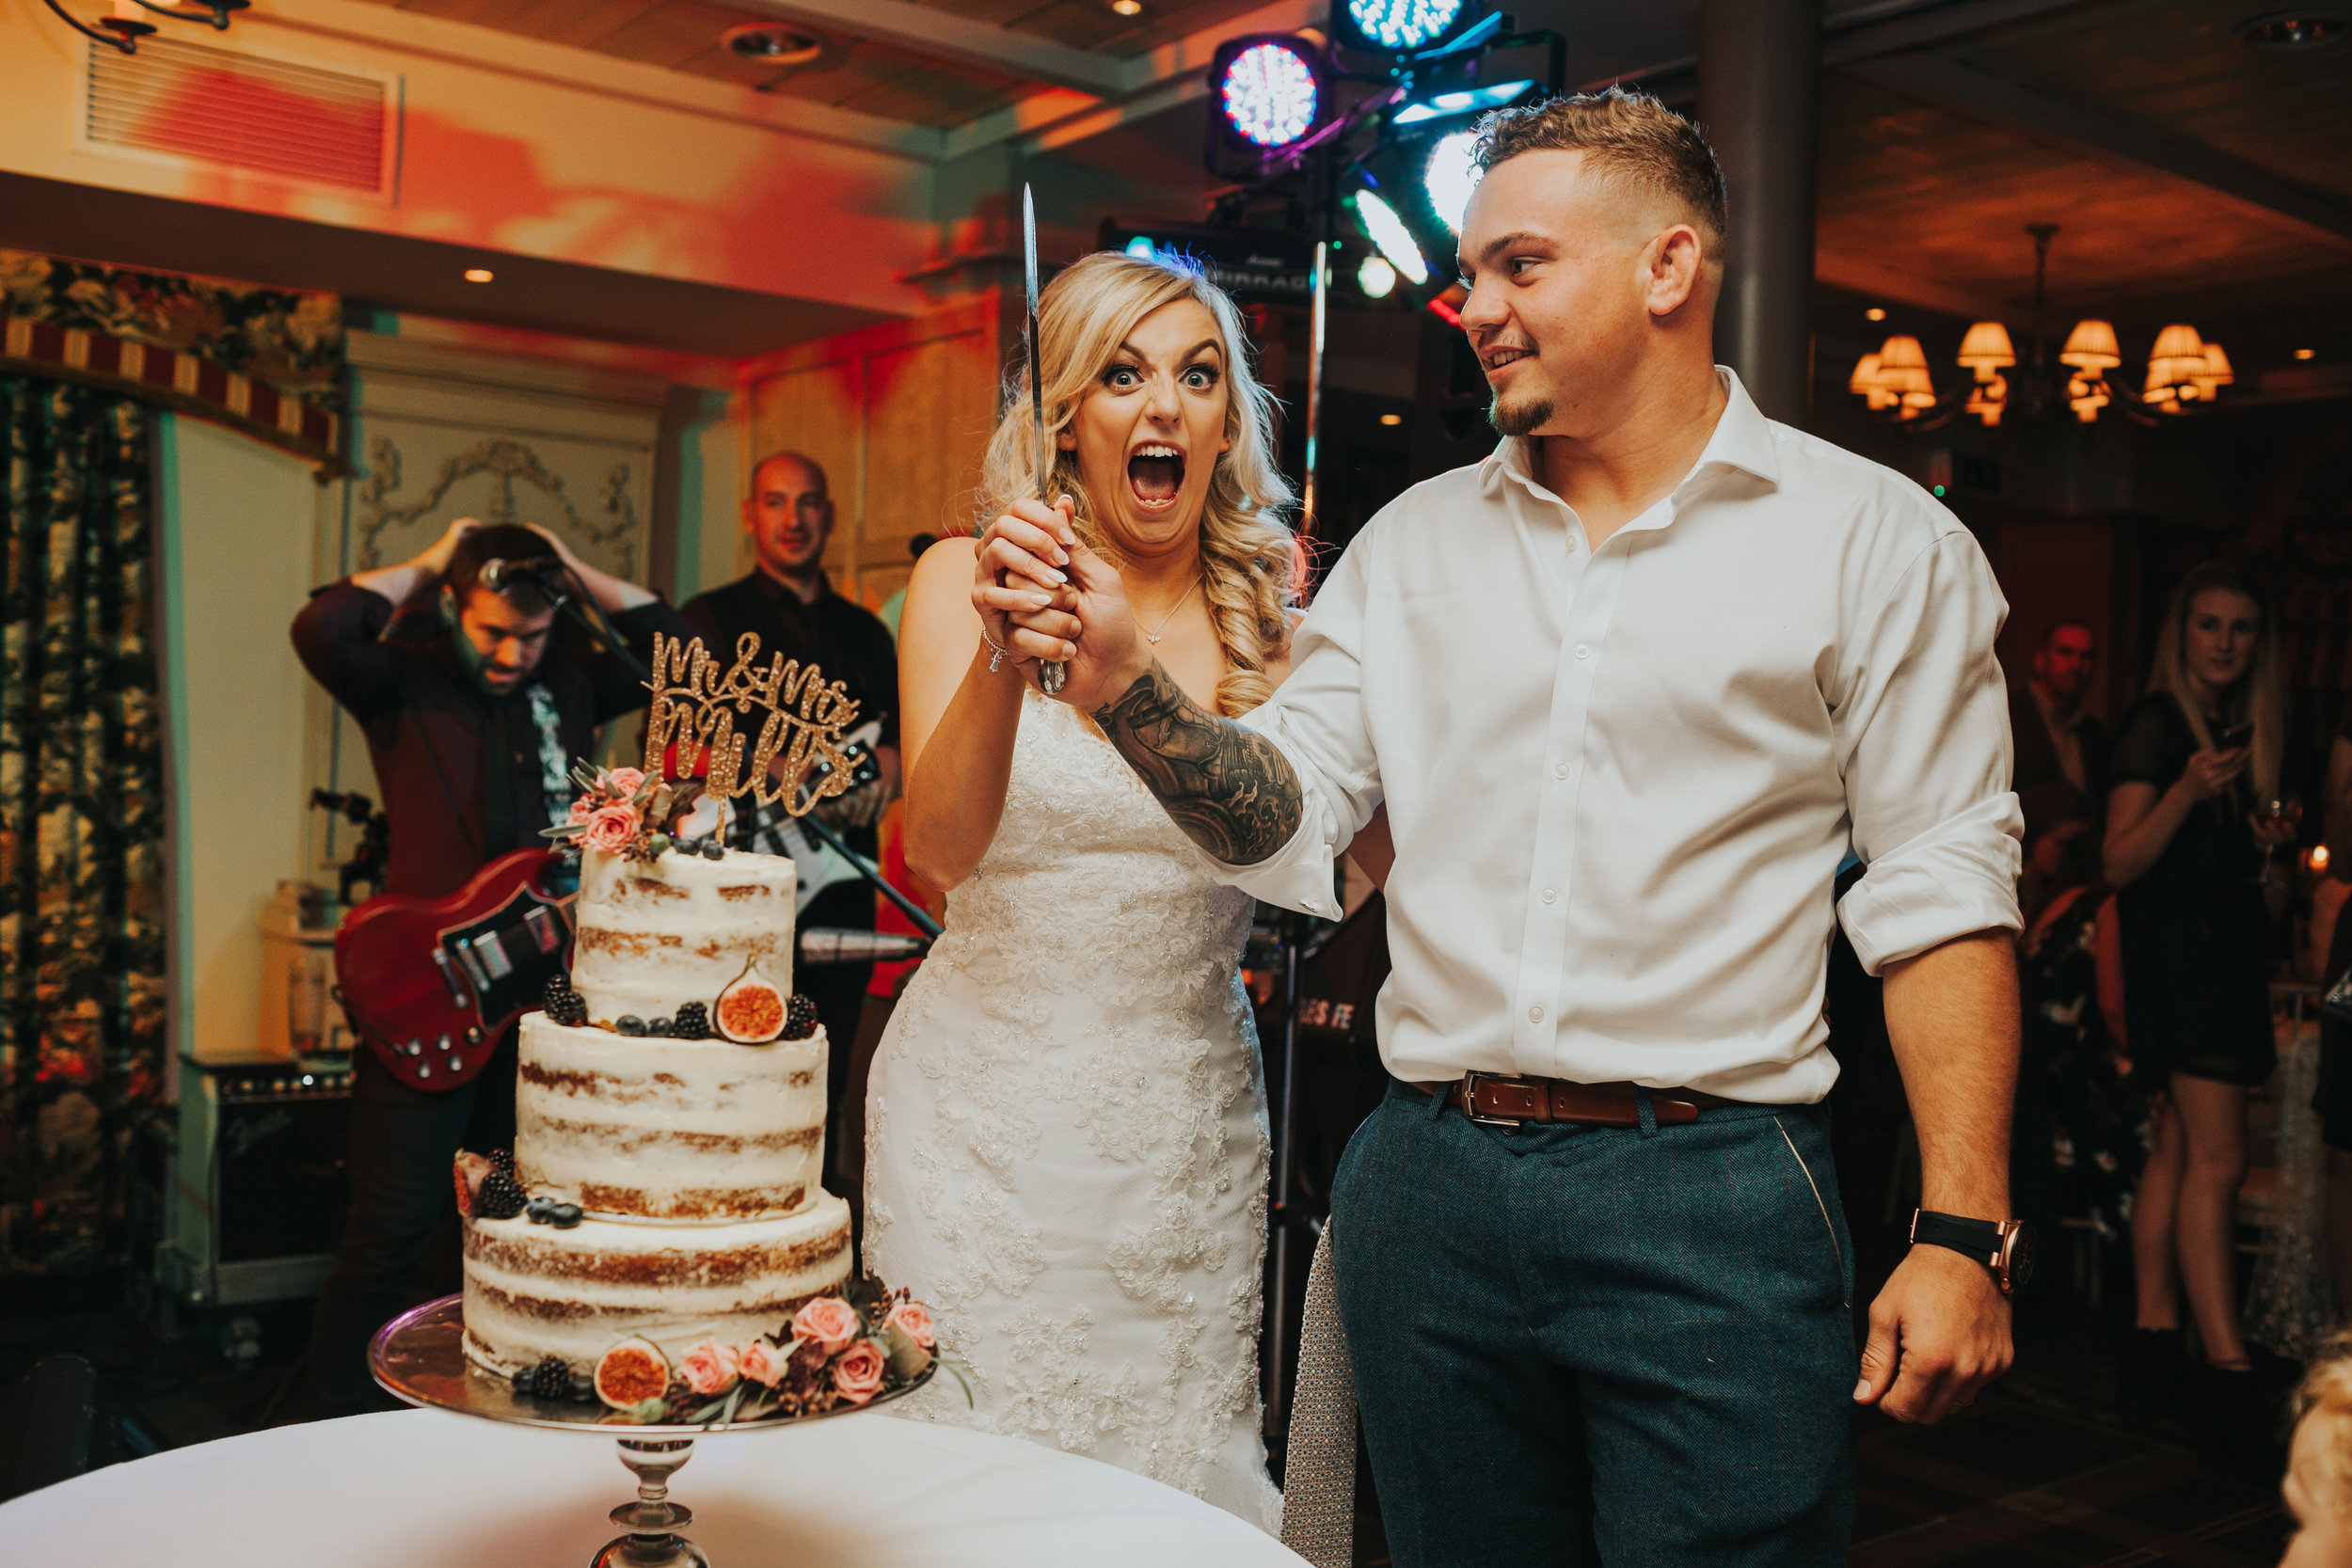 Bride pulls silly face as they cut the cake.